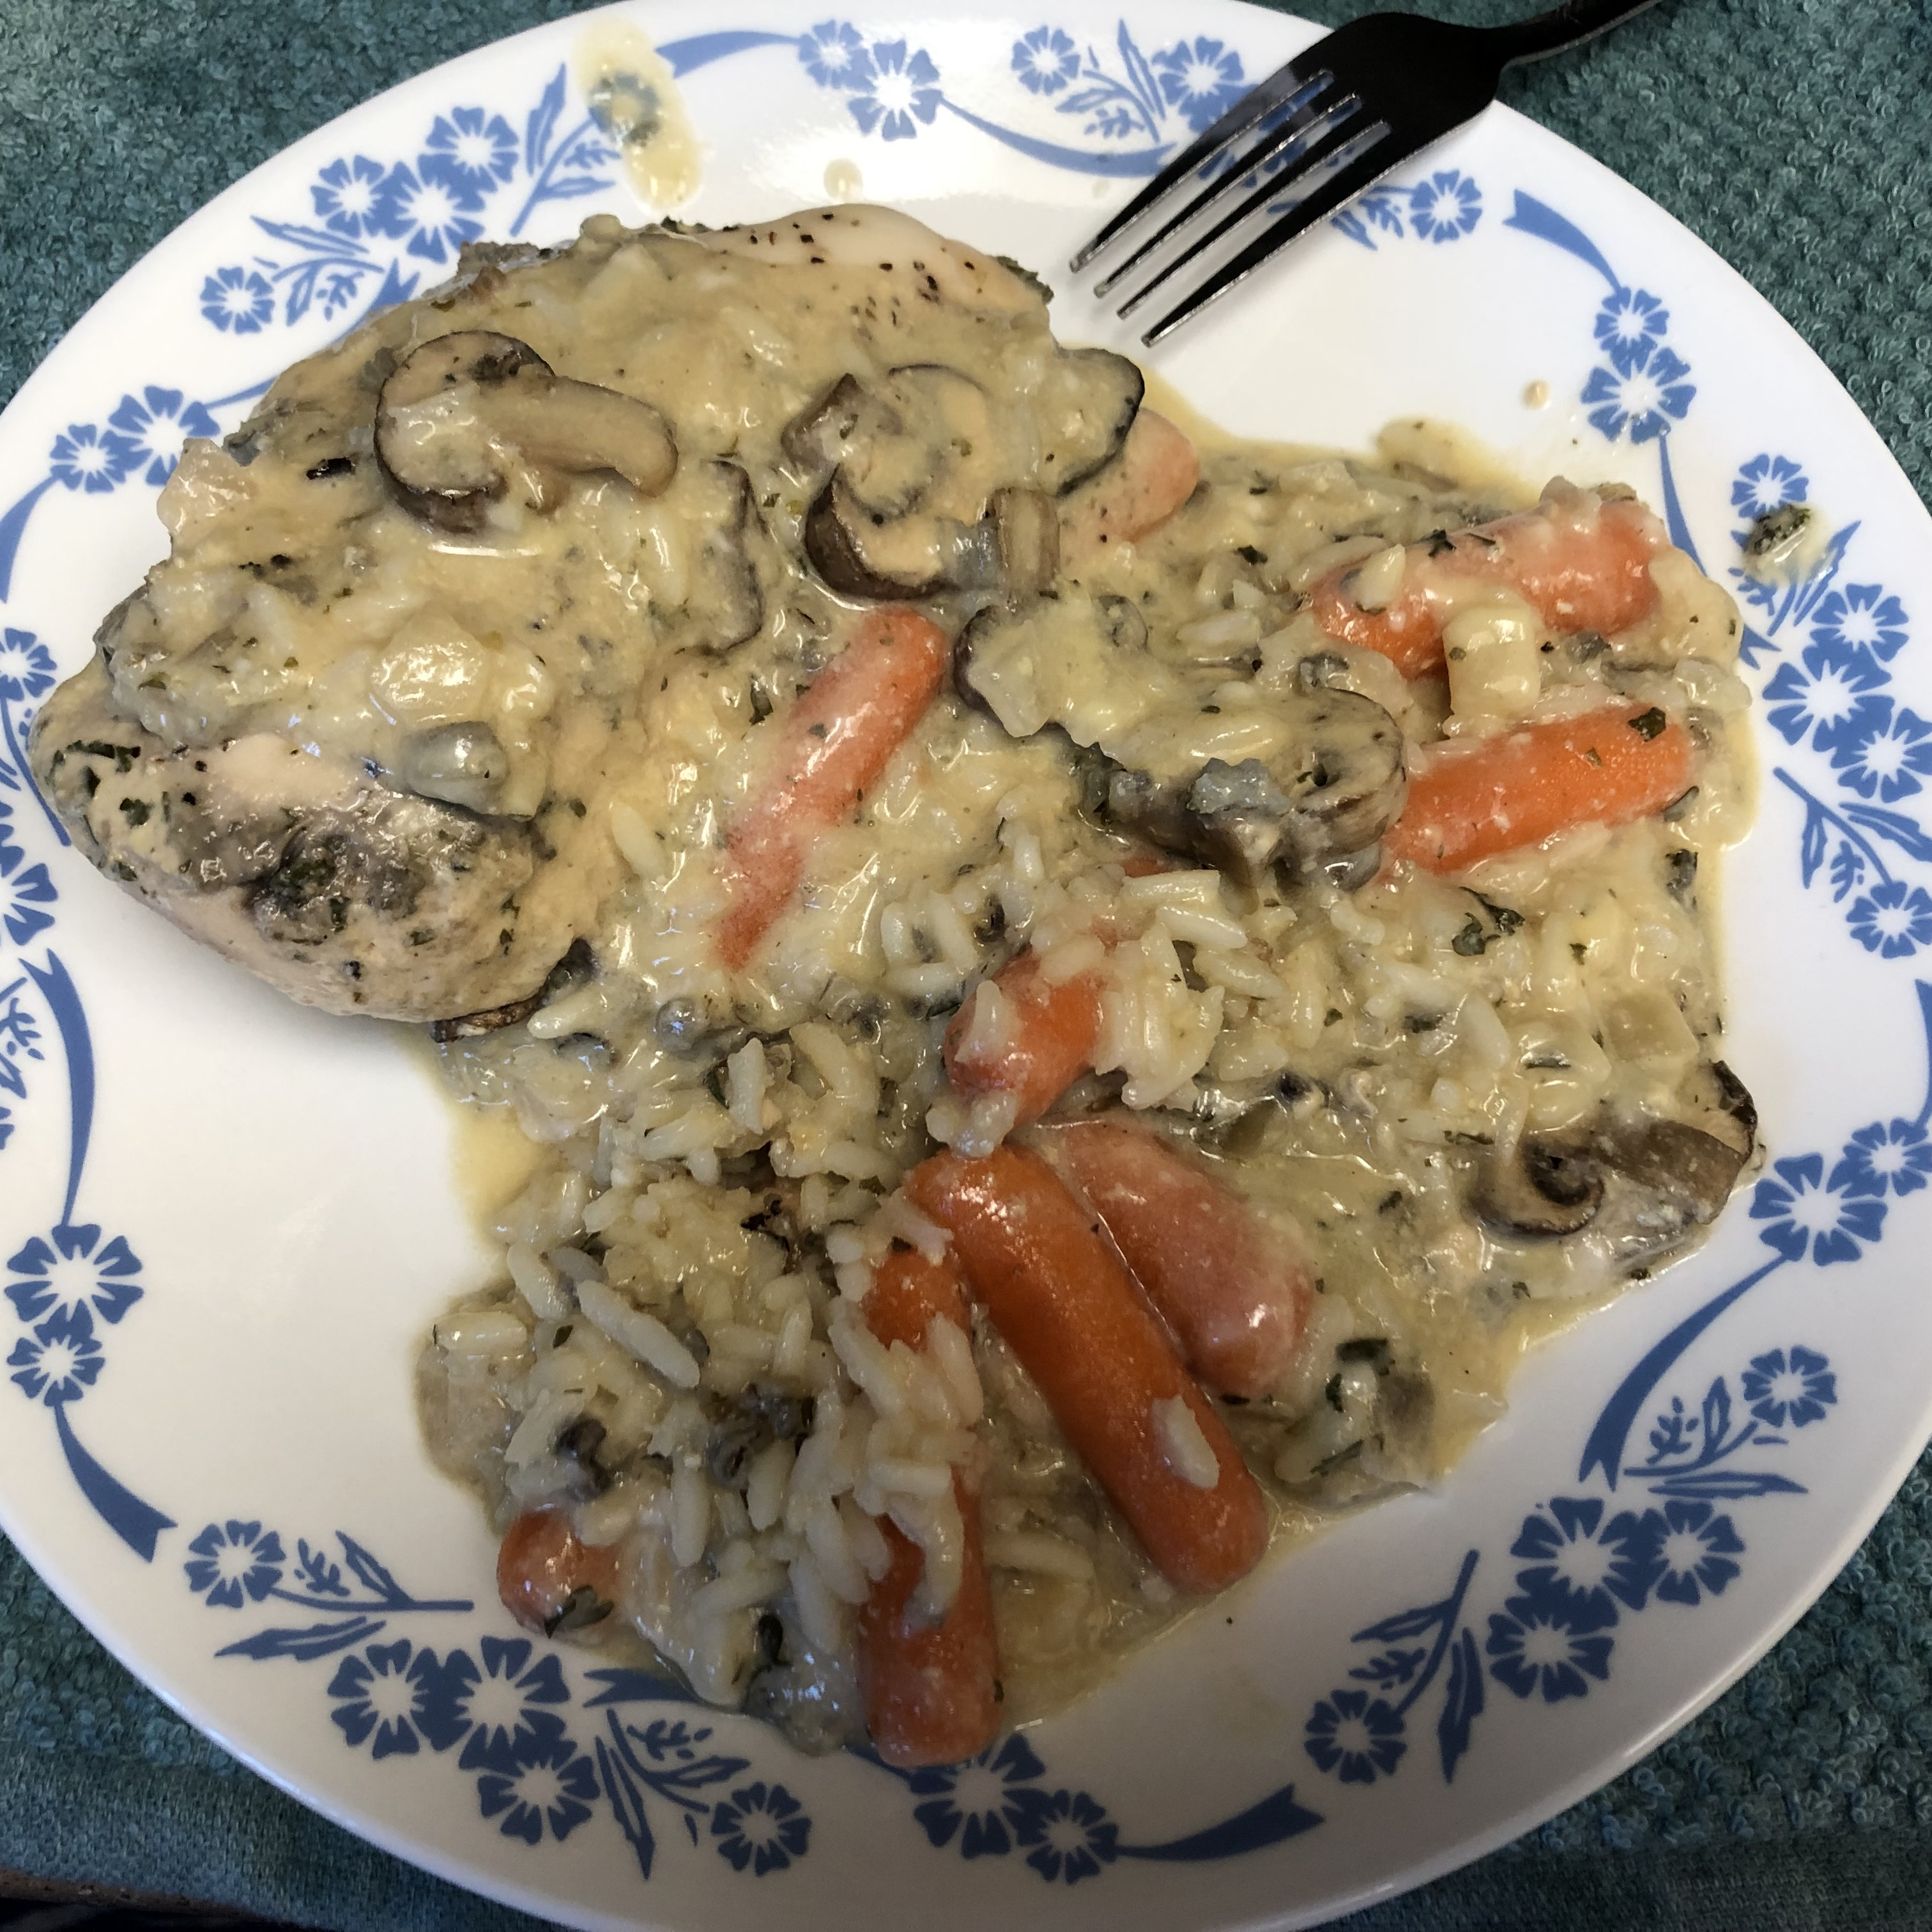 Chicken and Wild Rice Slow Cooker Dinner